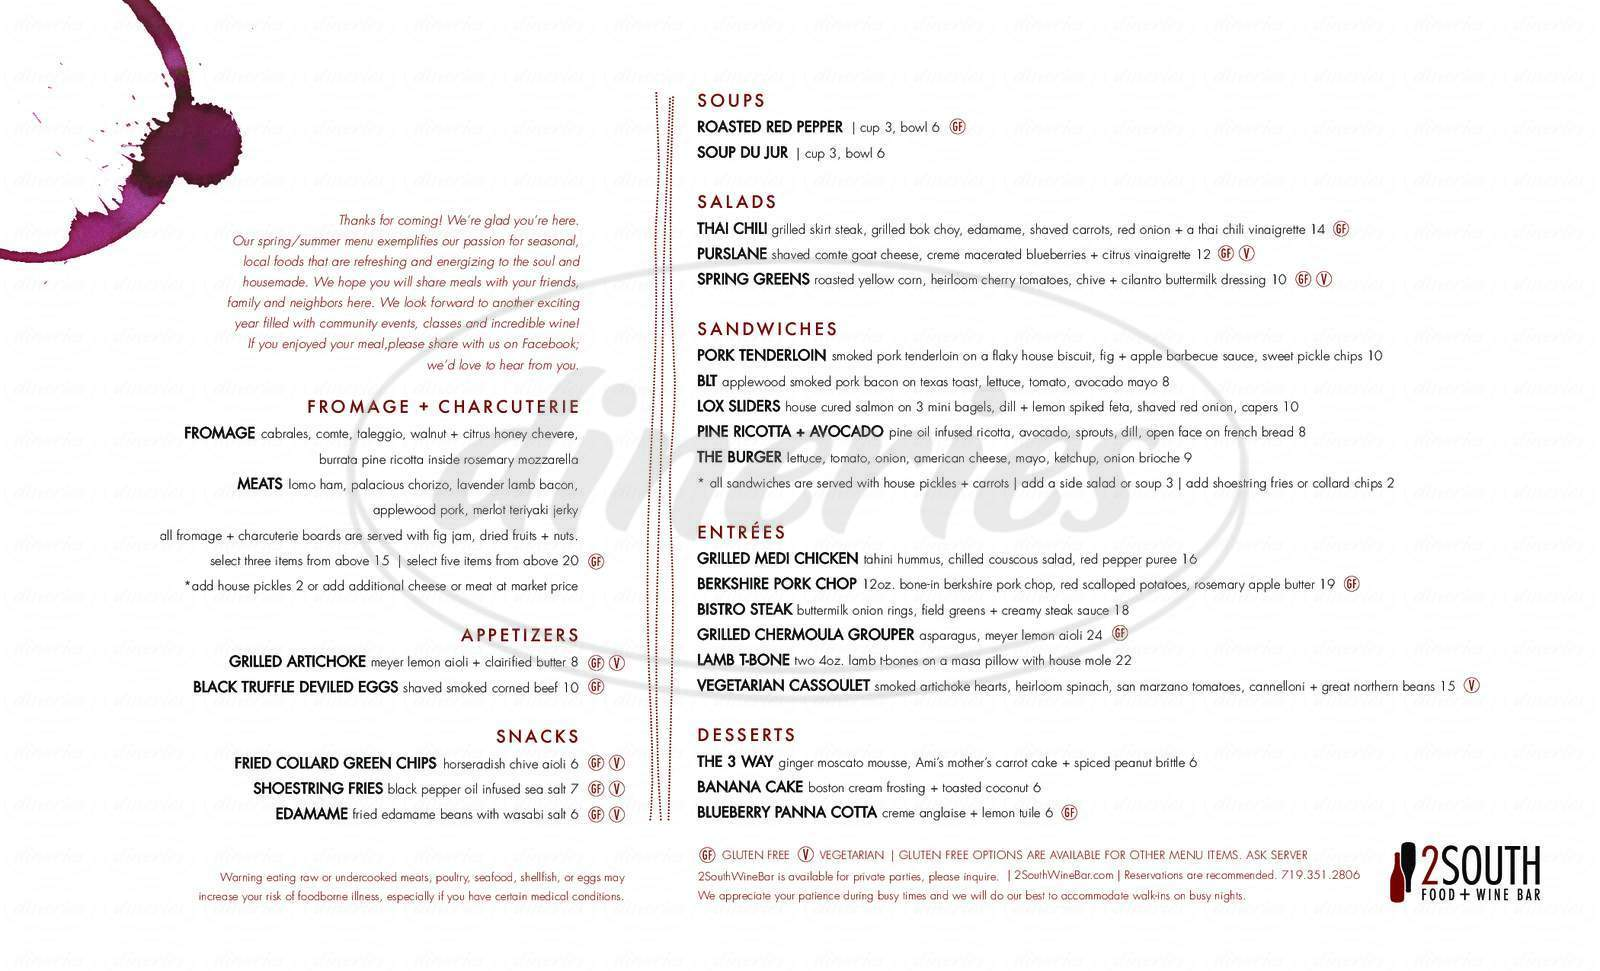 menu for 2 South Food and Wine Bar